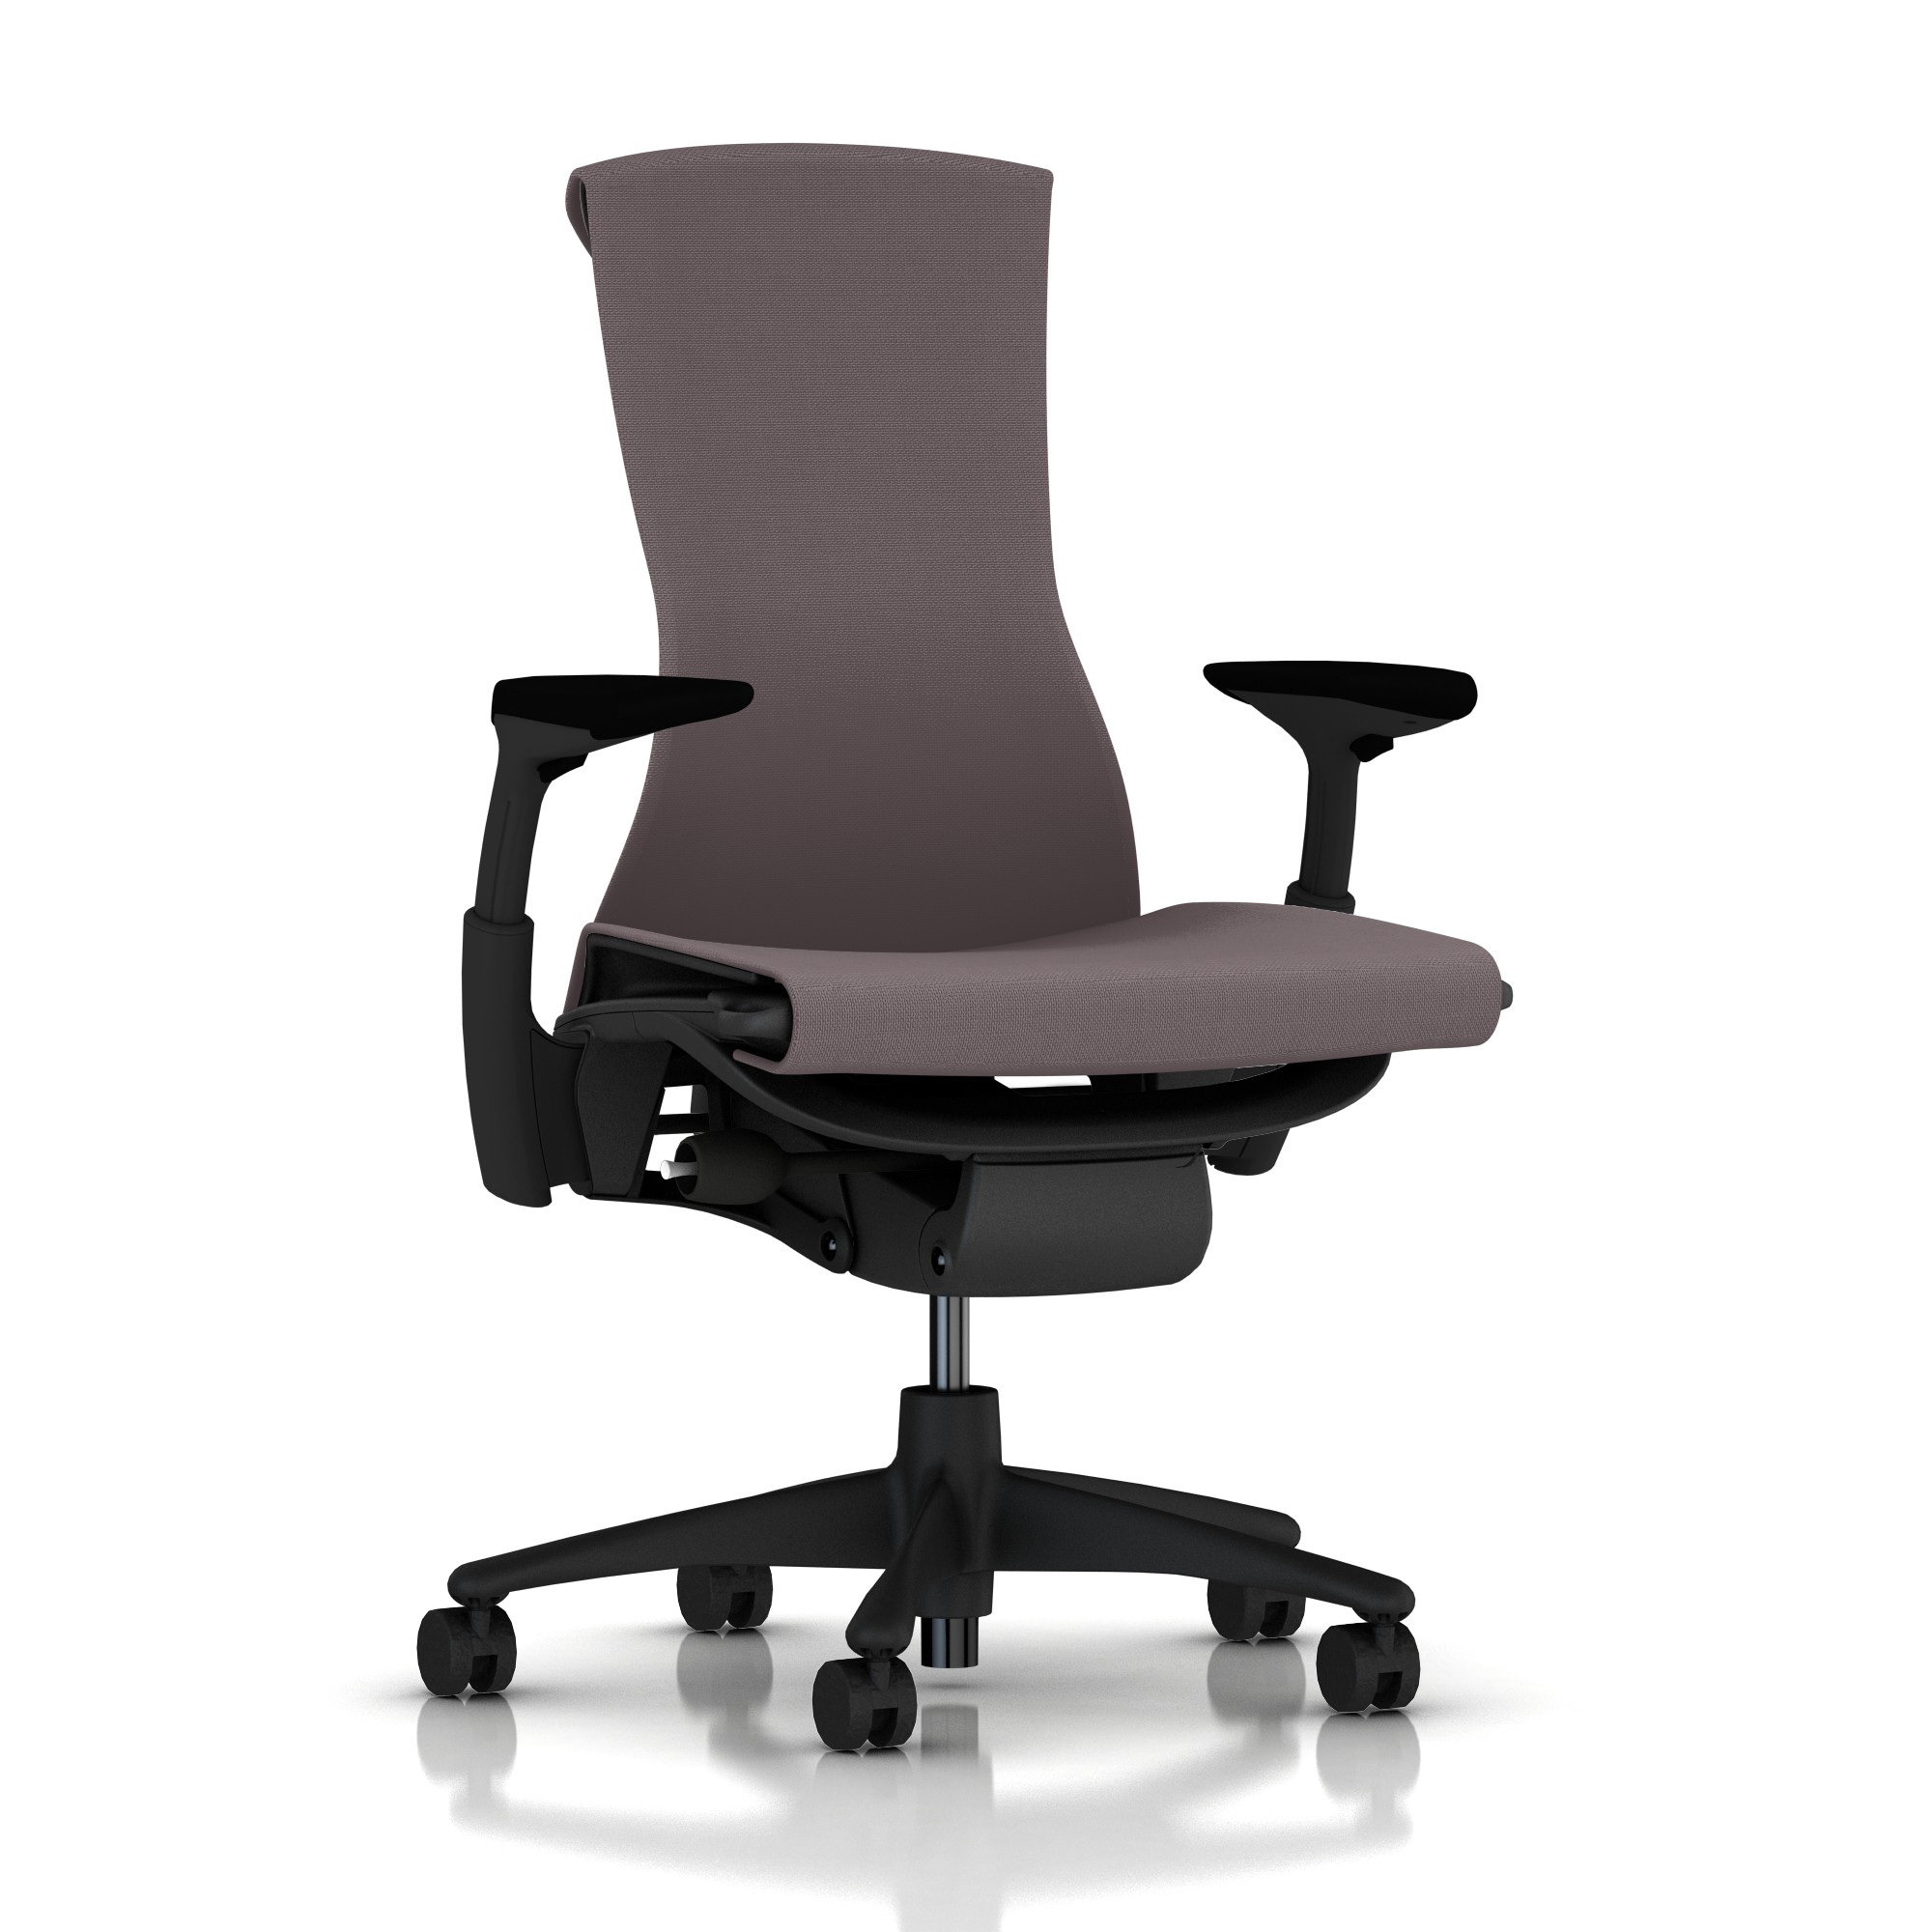 NEW - Embody Chair (Tundra Medley)